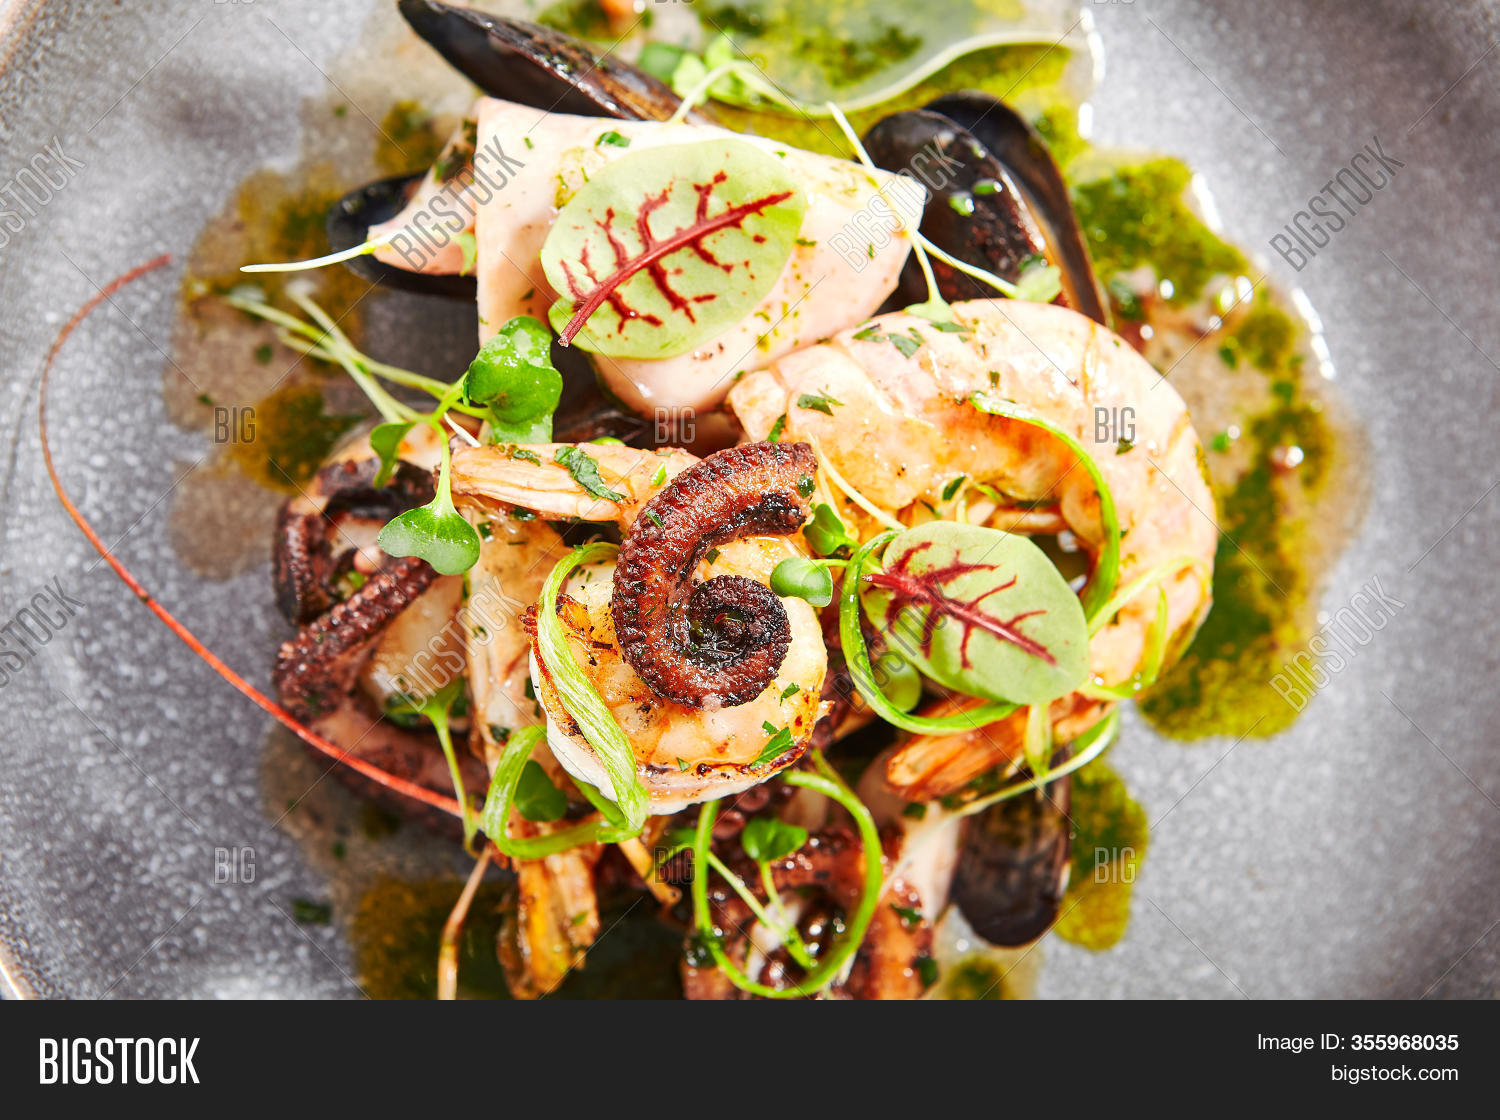 Seafood Assorted Image Photo Free Trial Bigstock